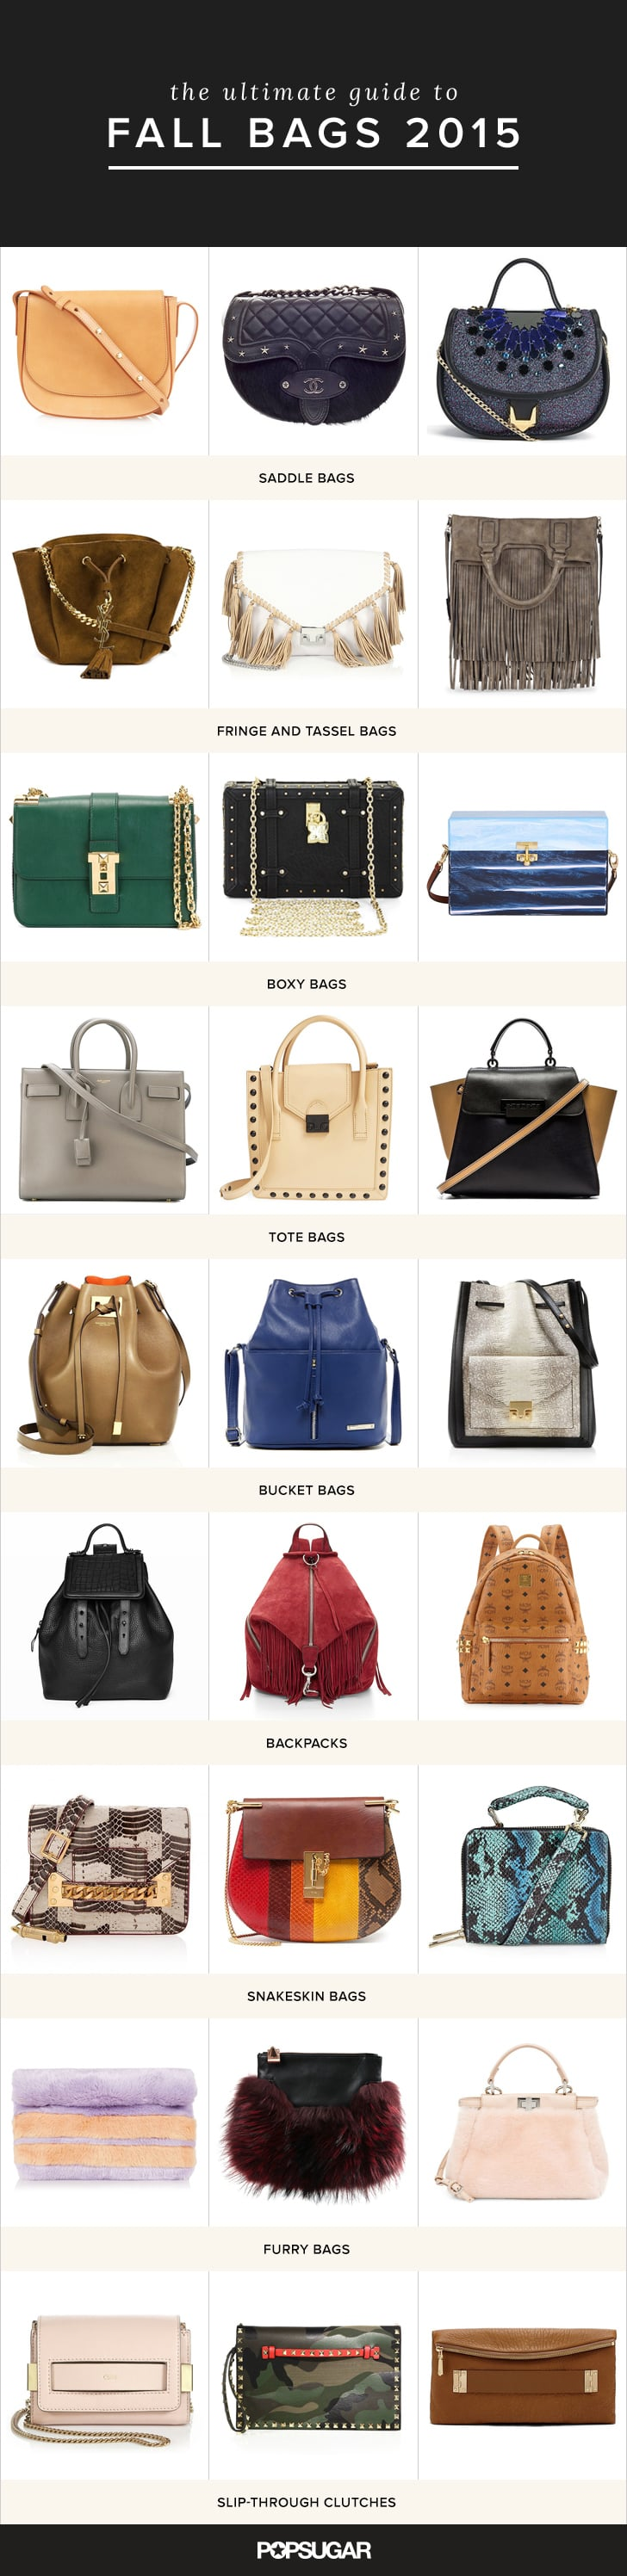 The Ultimate Guide to Fall Handbags